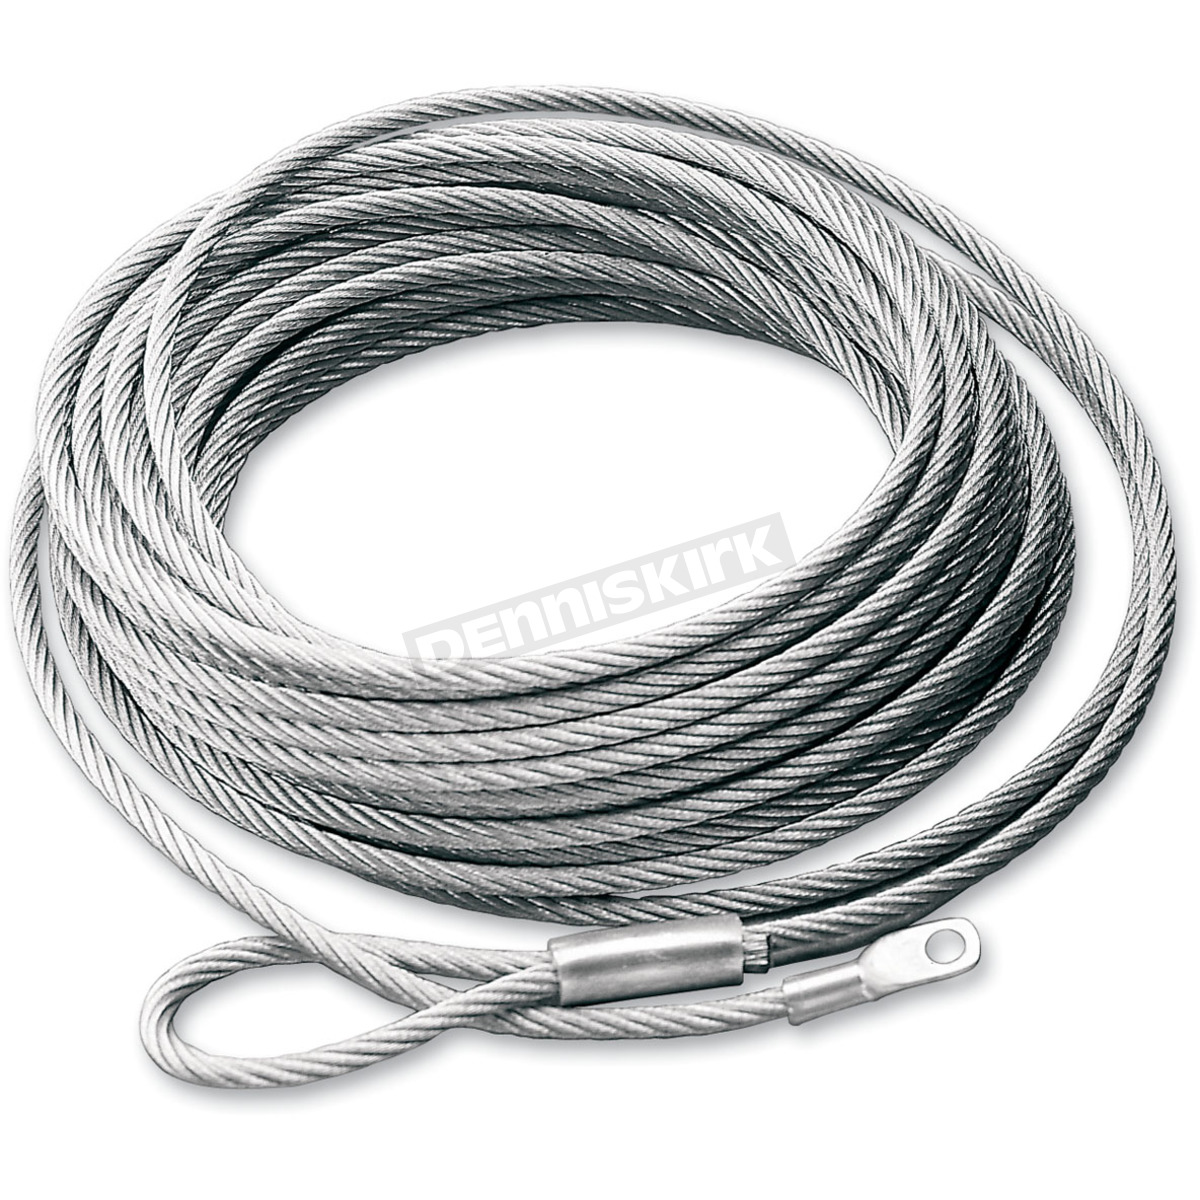 hight resolution of replacement wire rope for atv winch w steel drum 15236